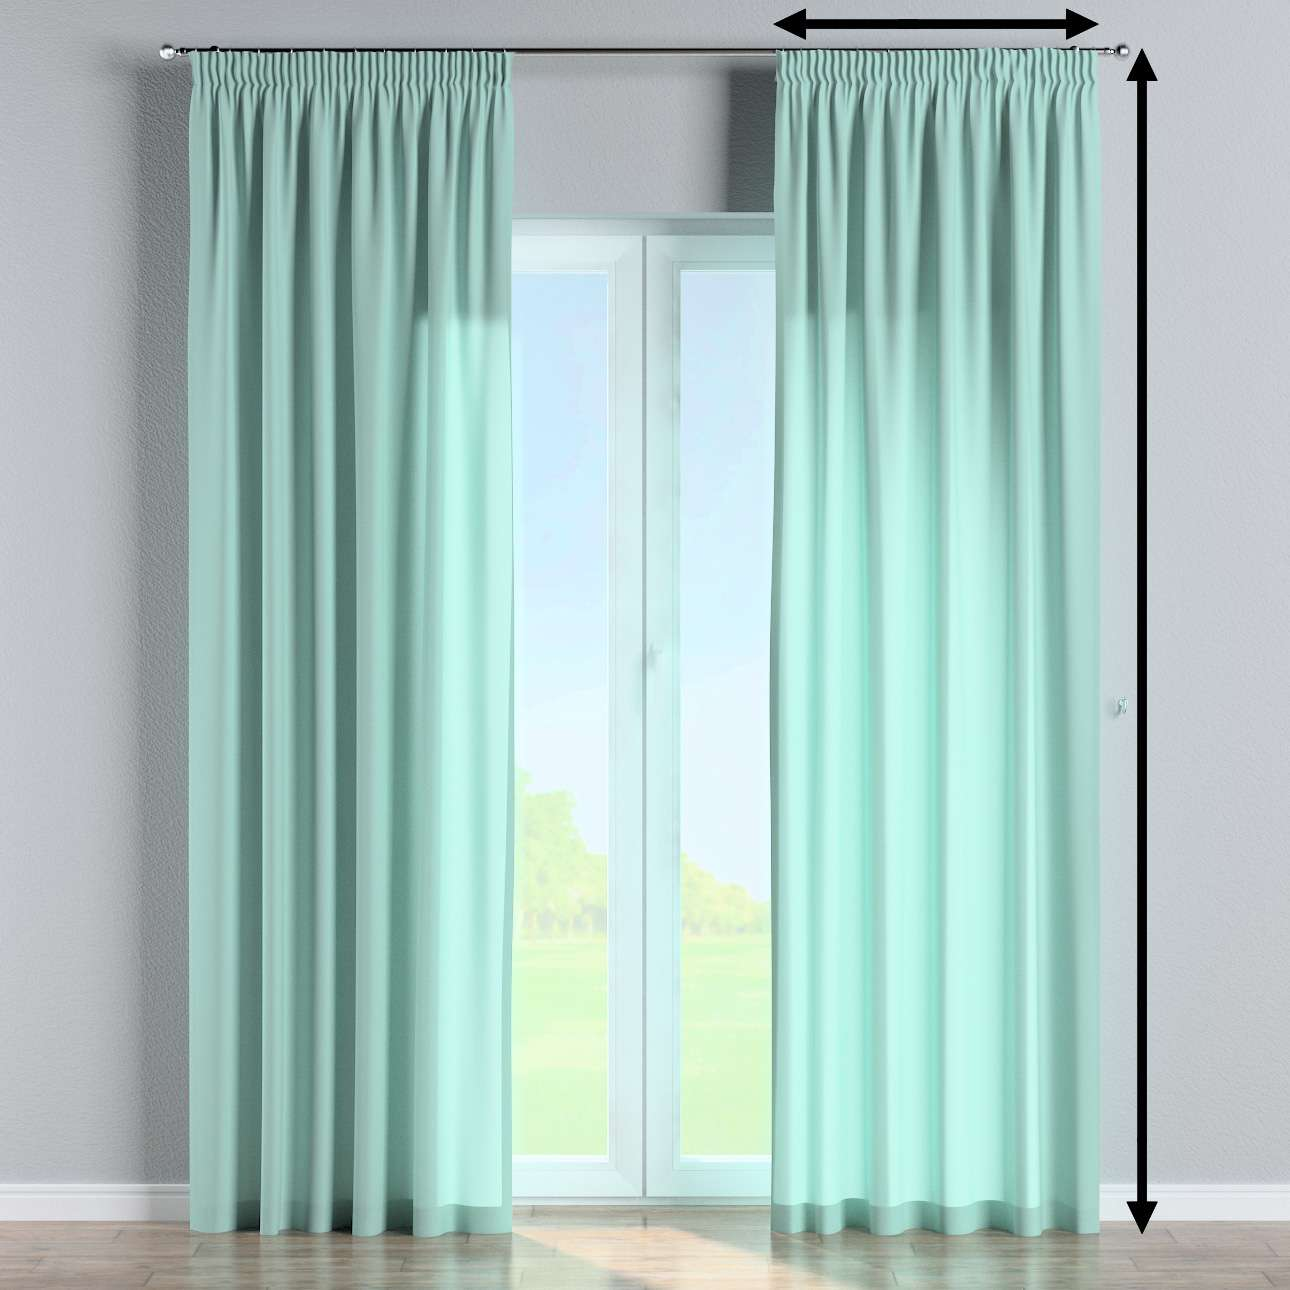 Pencil pleat lined curtains in collection Loneta , fabric: 133-32